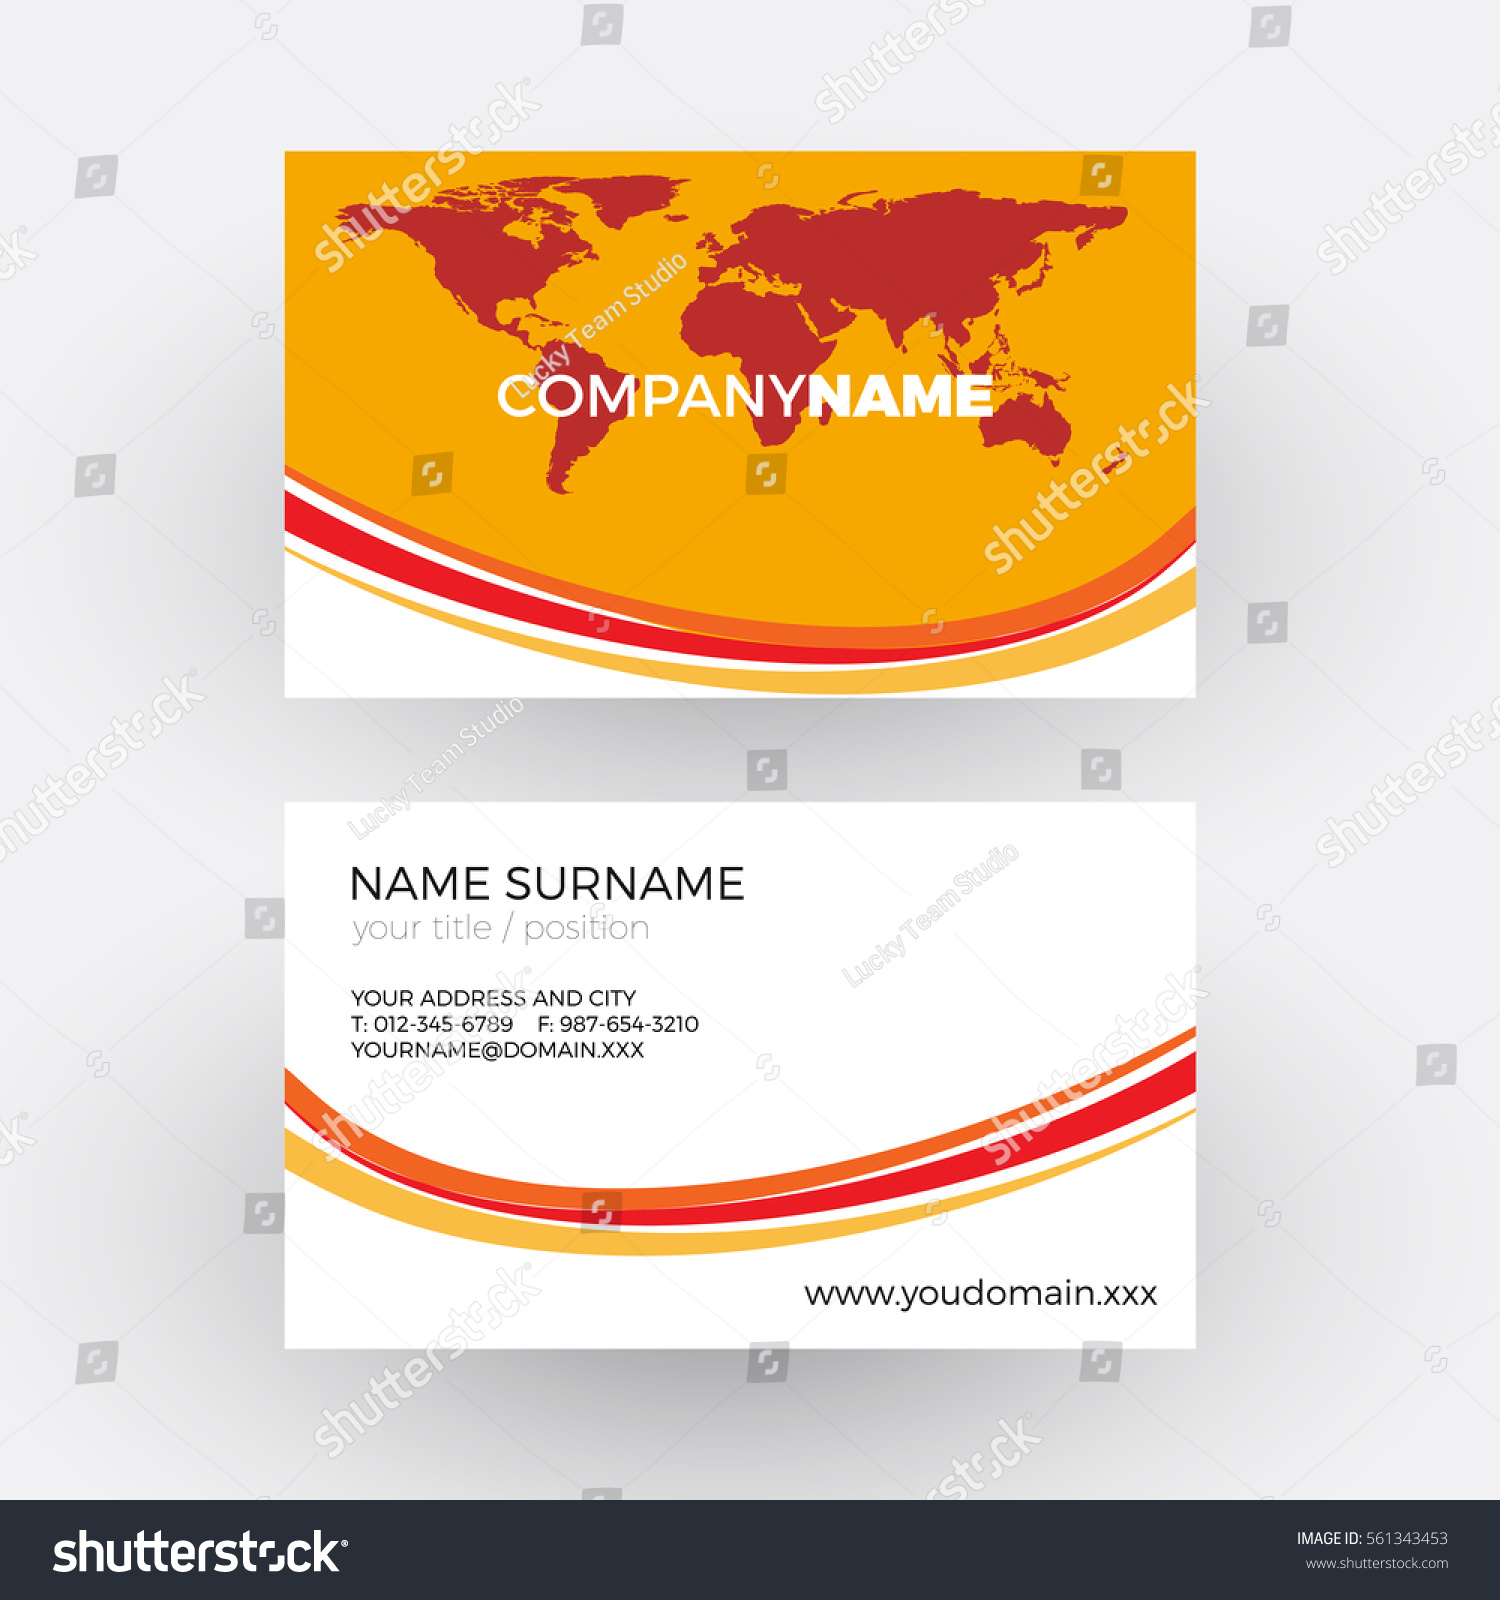 Red World Waves Global Business Concept Stock Vector HD (Royalty ...